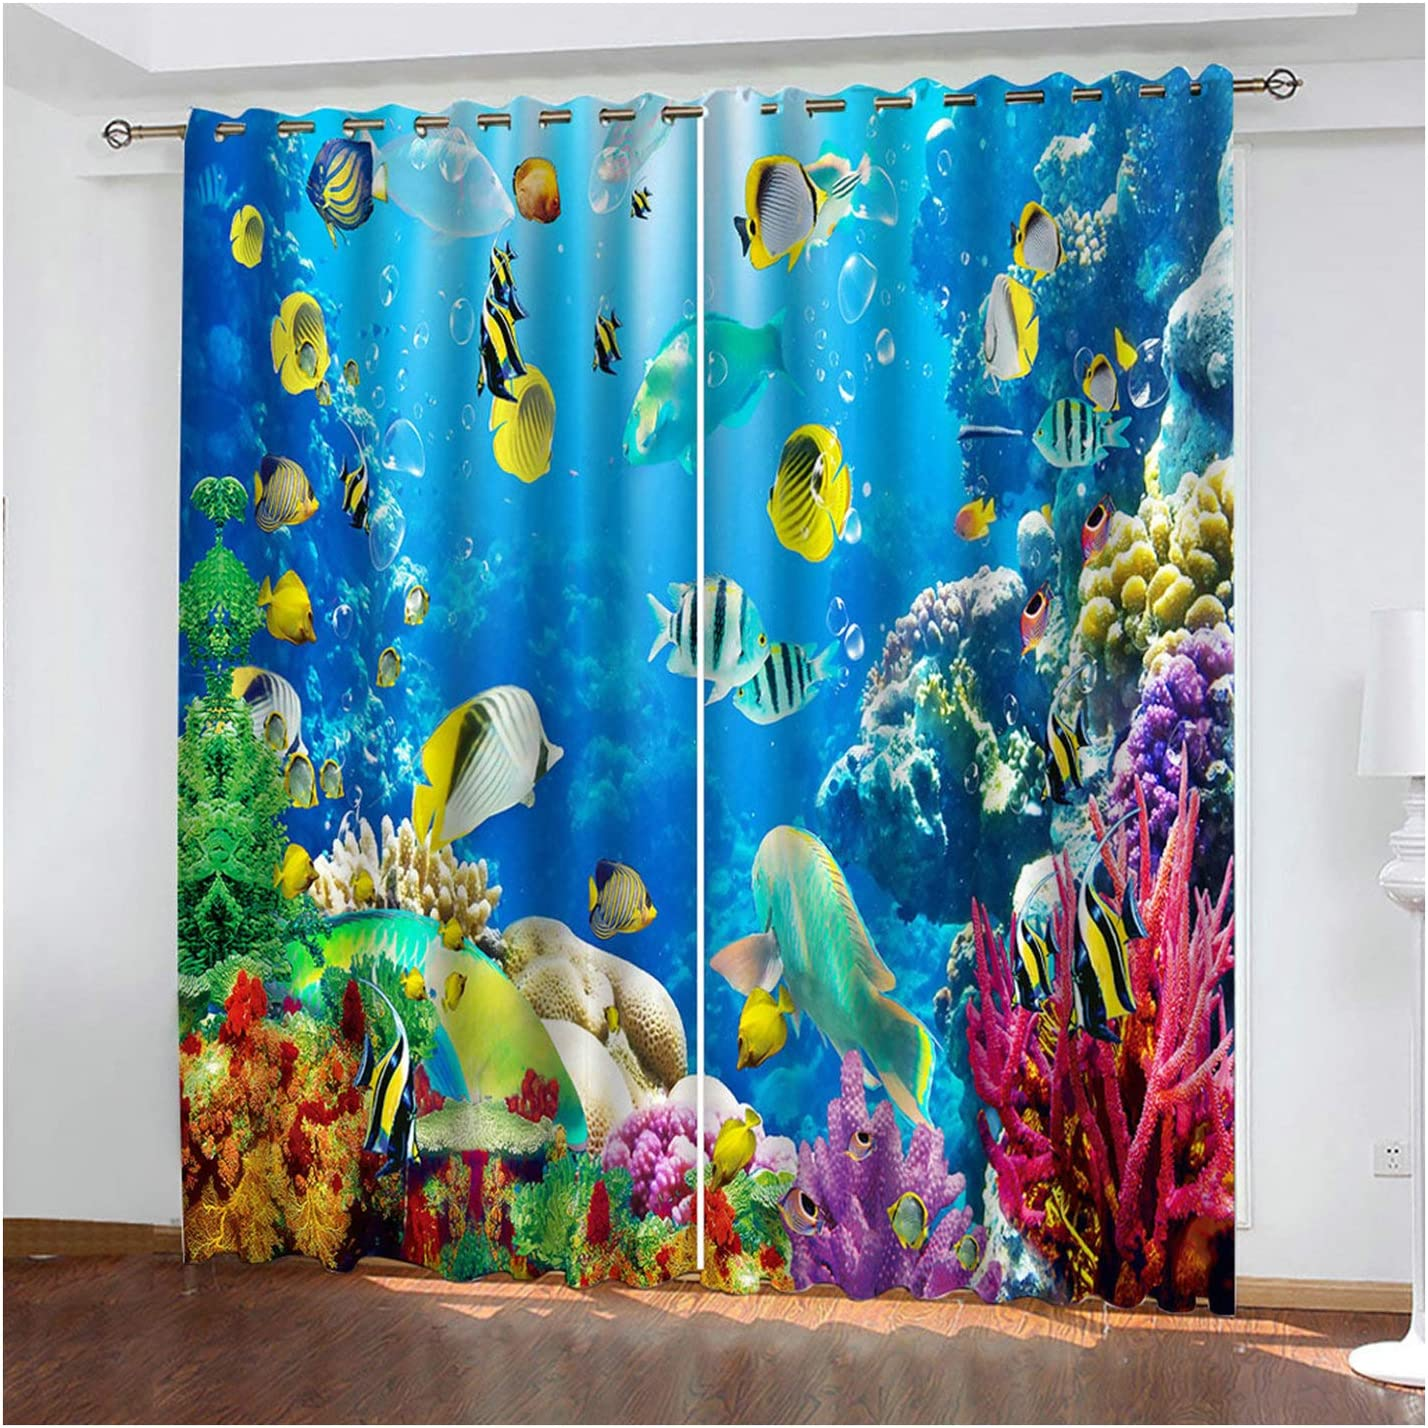 MoAndy Curtains for Bedroom 2 Inventory cleanup selling sale Panels Boys 54 72 overseas x Inch